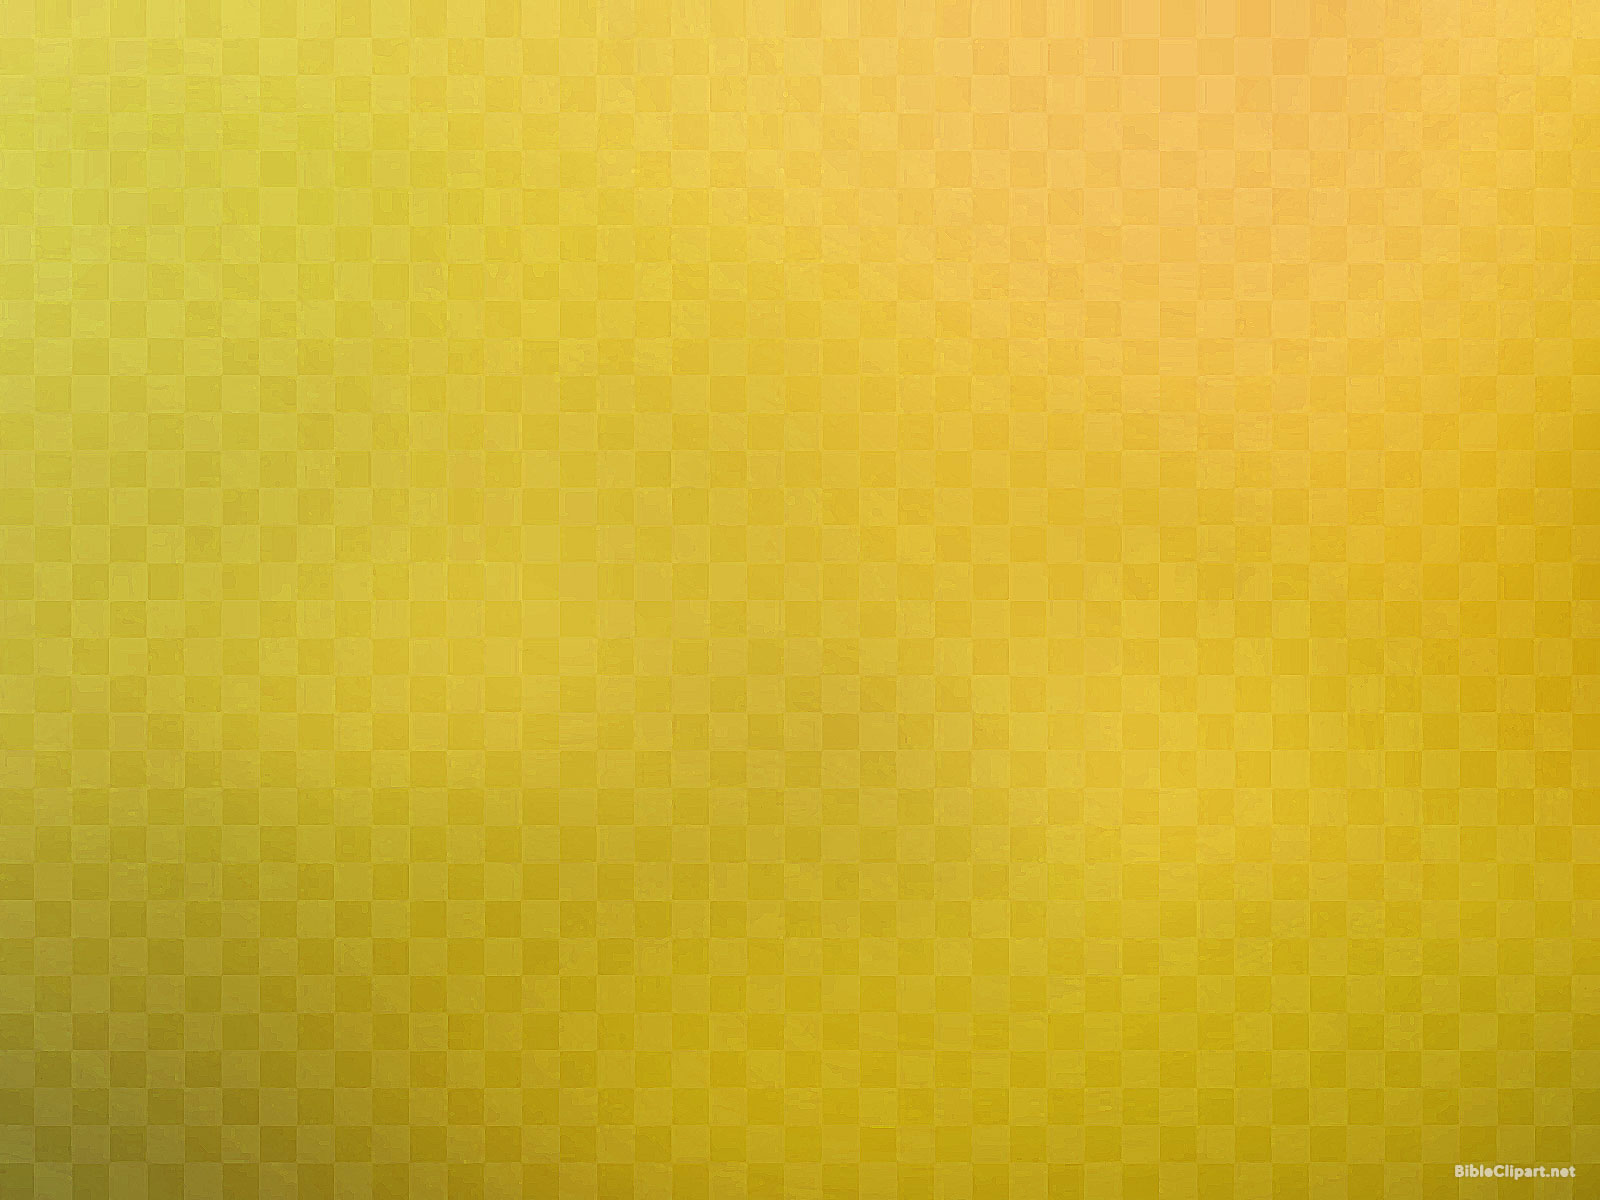 yellow-square-texture-background